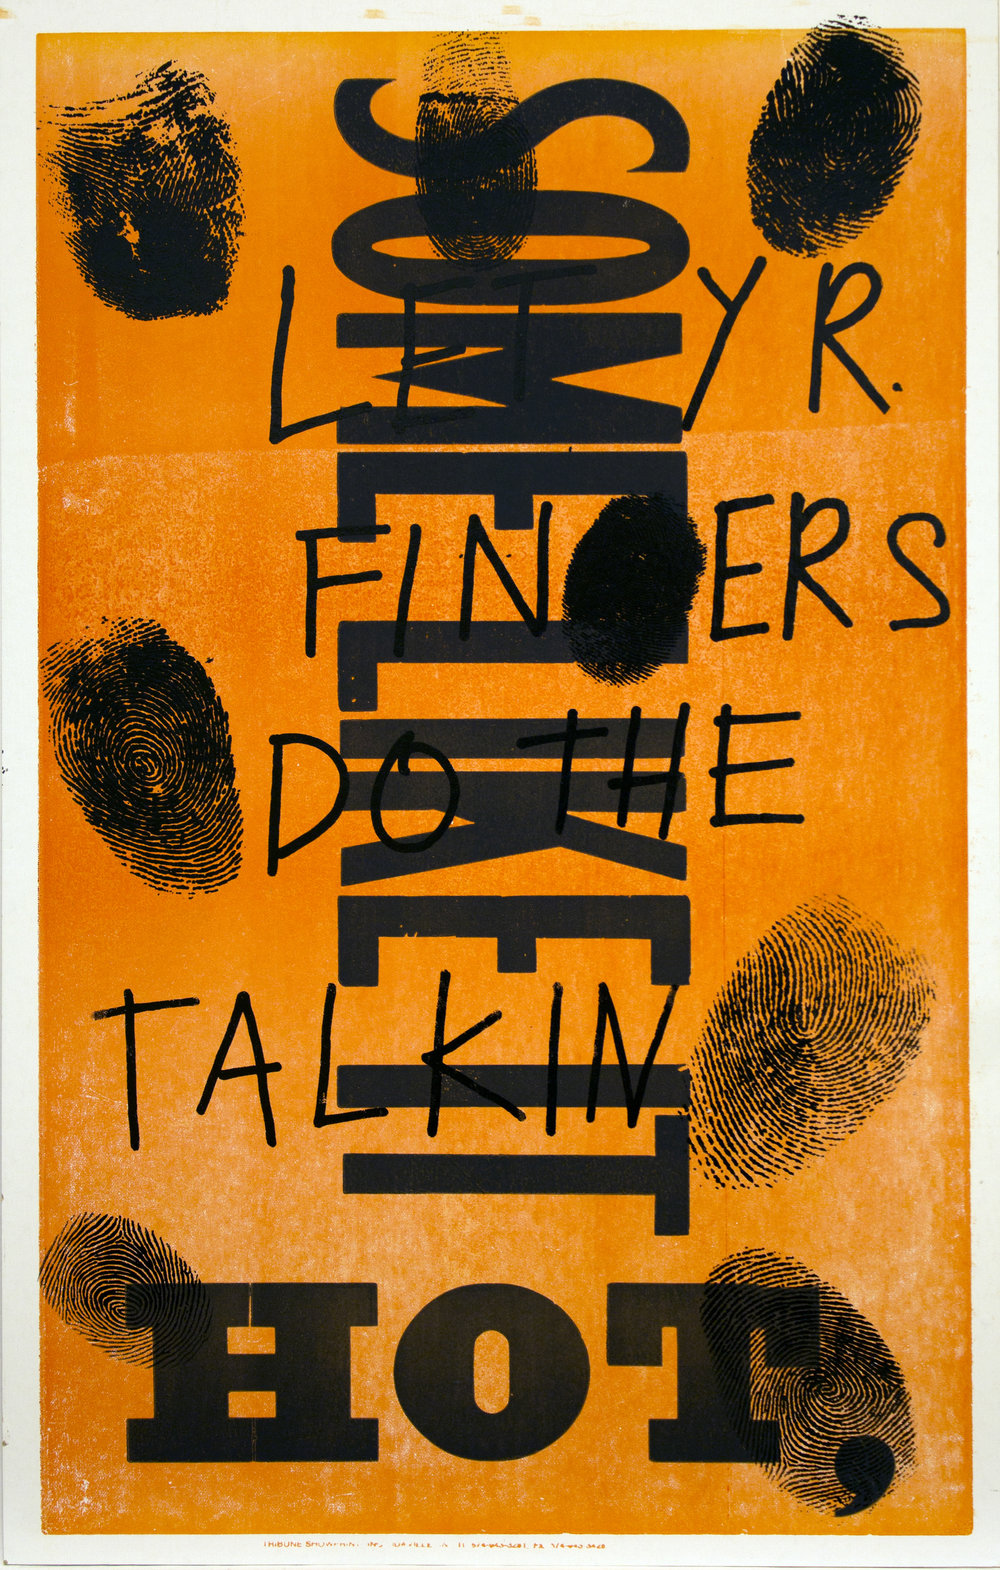 Christopher Michlig and Jan Tumlir,  The Scene of the Crime (SOME LIKE IT HOT,) , 2017. Silkscreen and letterpress on poster board, 14 x 22 inches